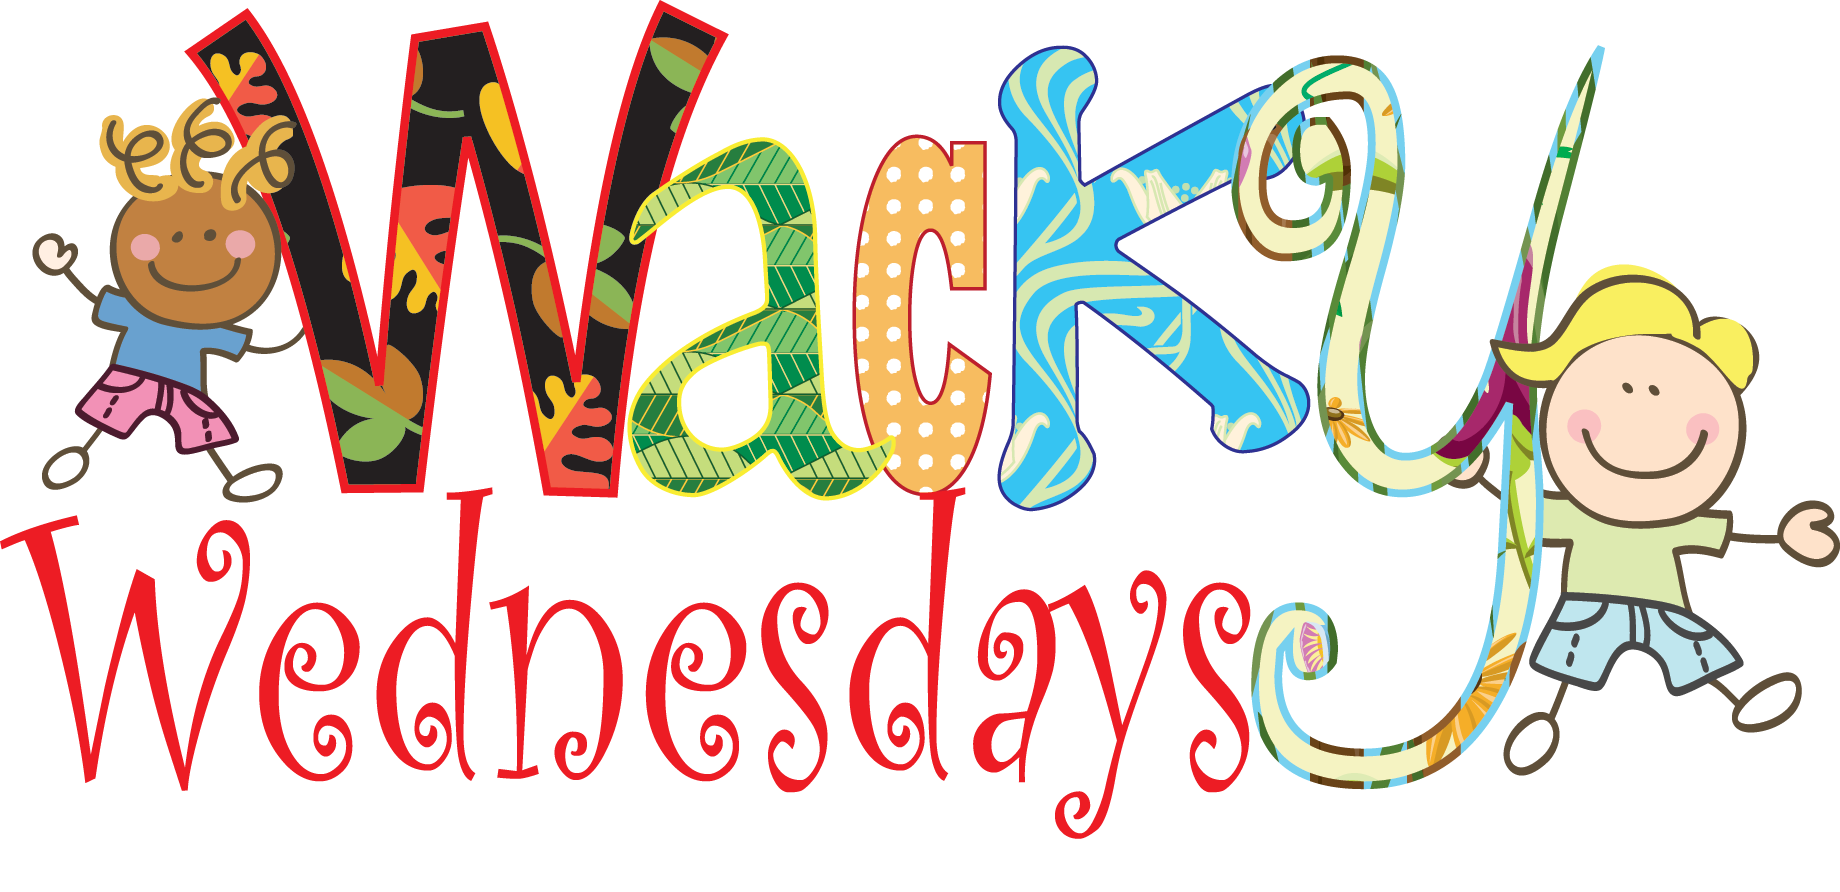 1840x892 Wednesday Clipart